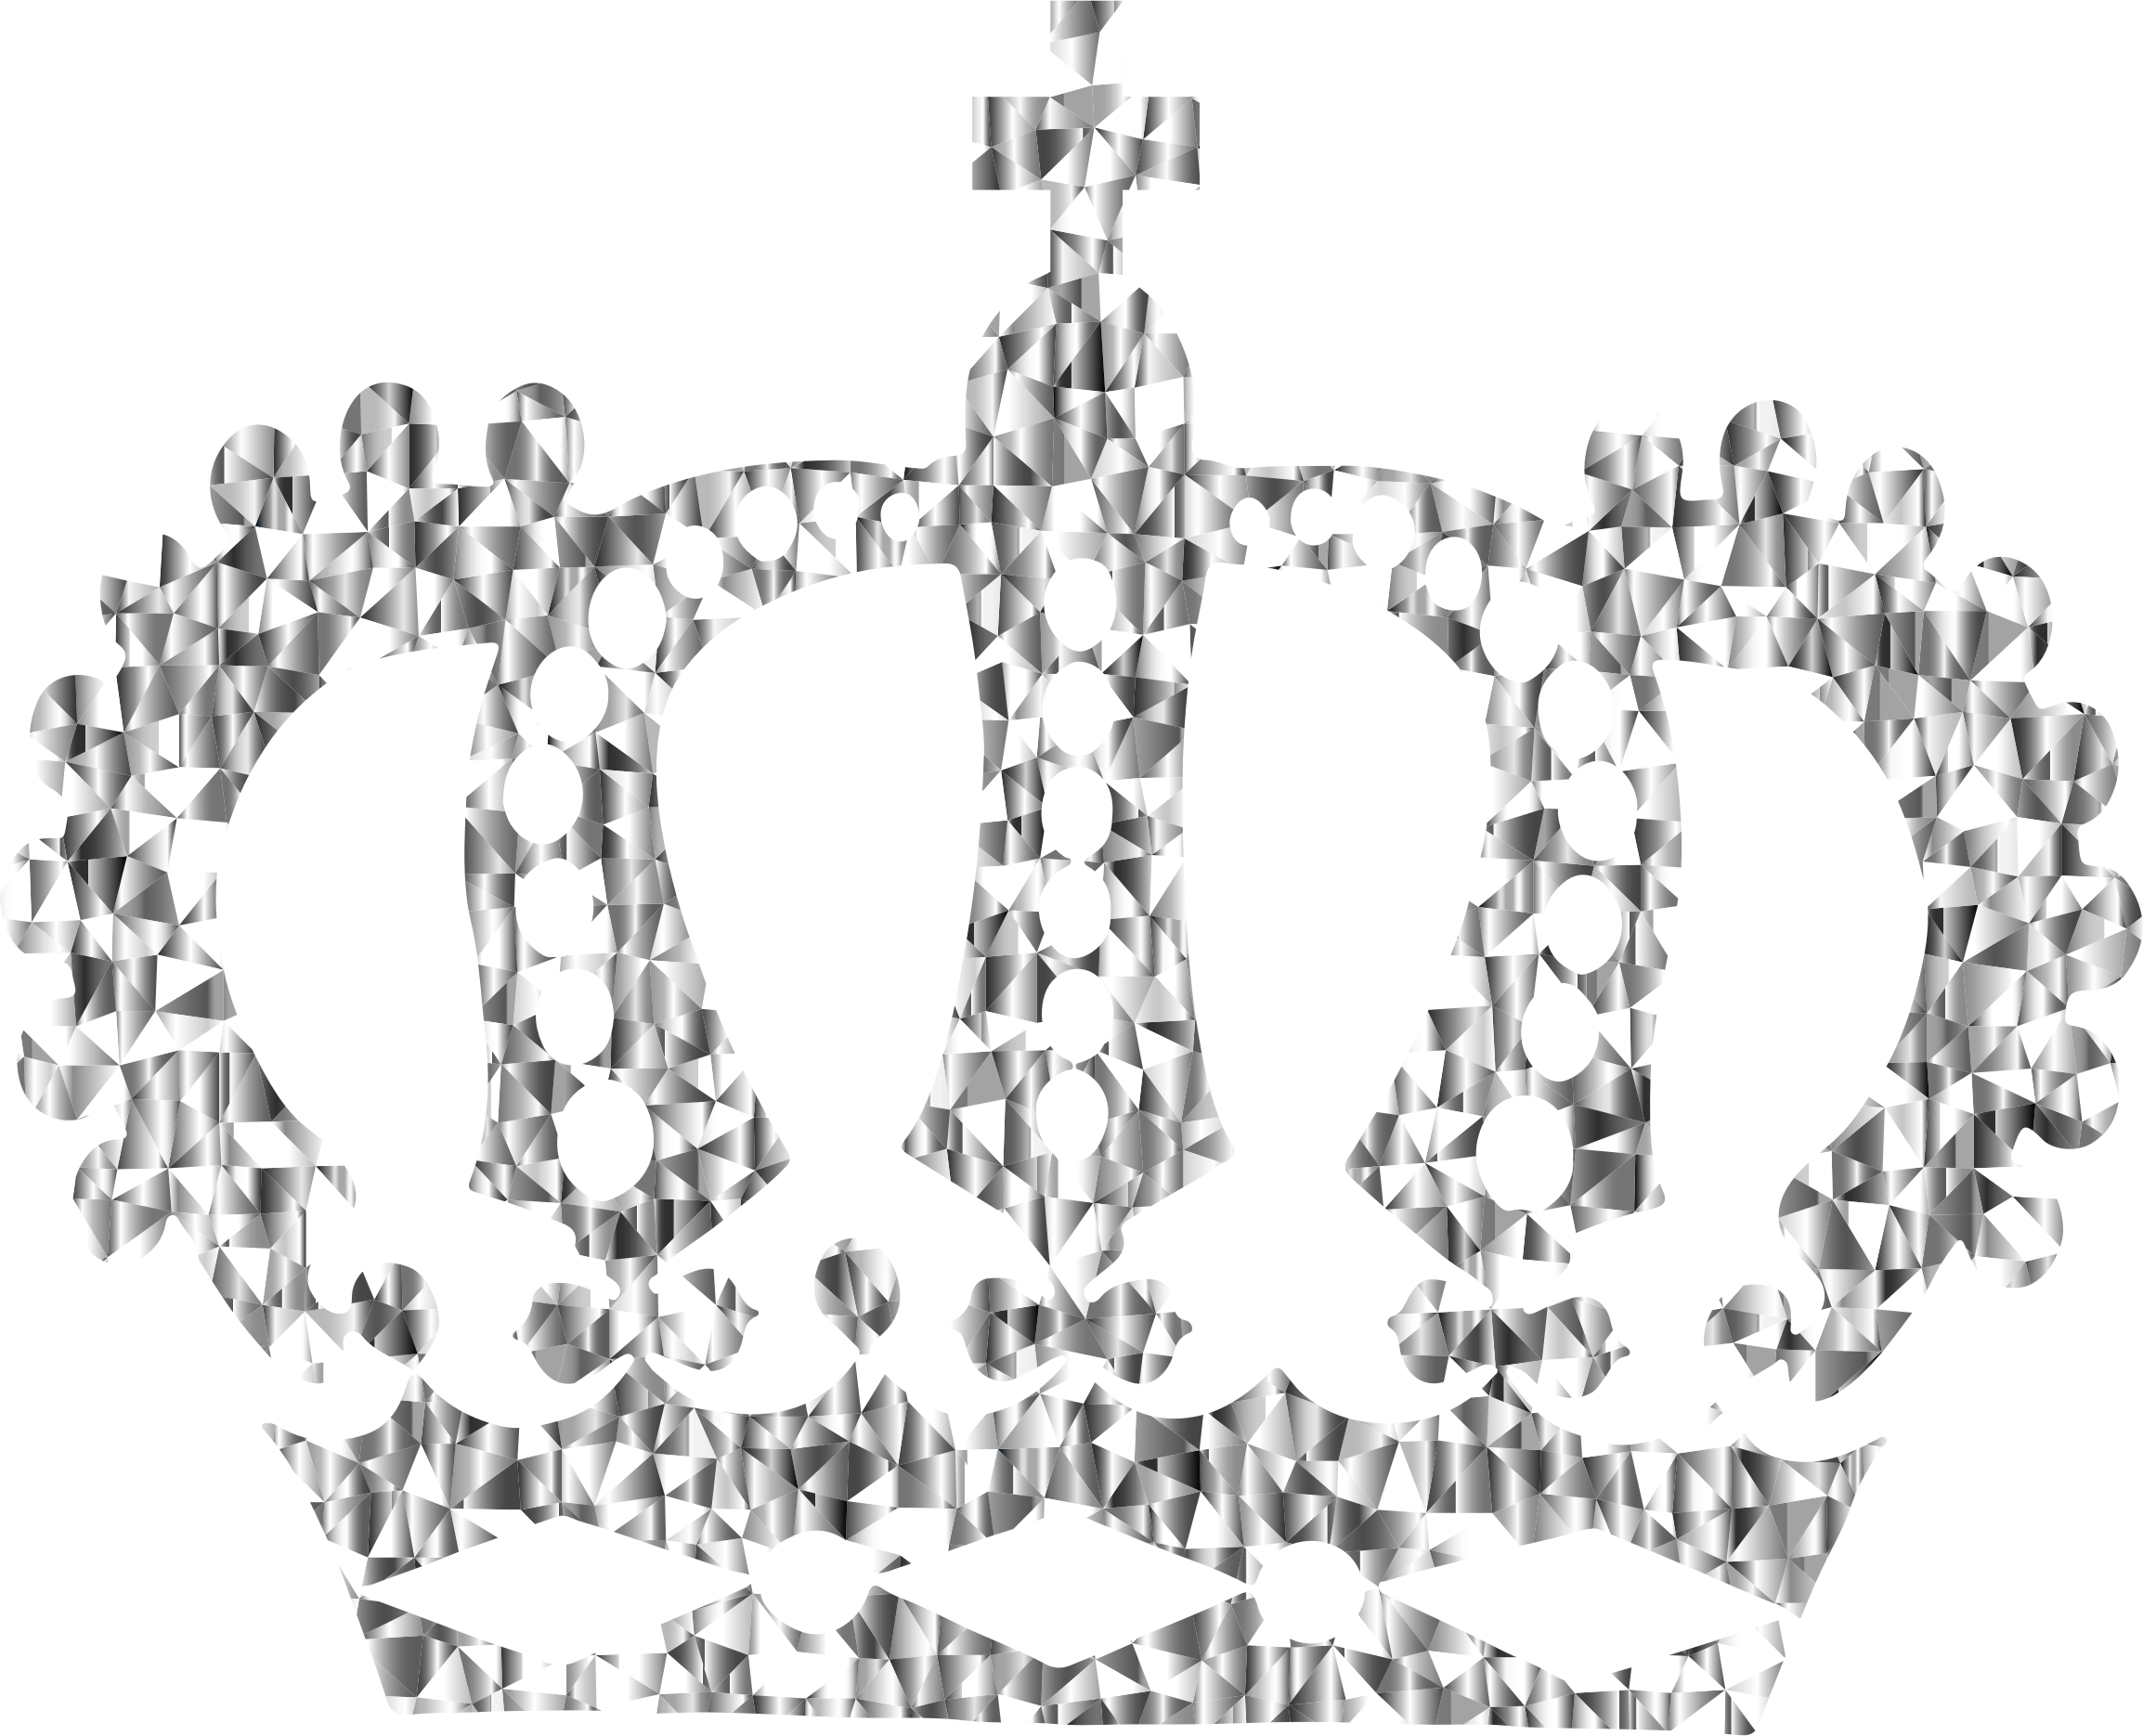 Kc royals crown clipart png download Royal Crown Drawing at GetDrawings.com | Free for personal use Royal ... png download